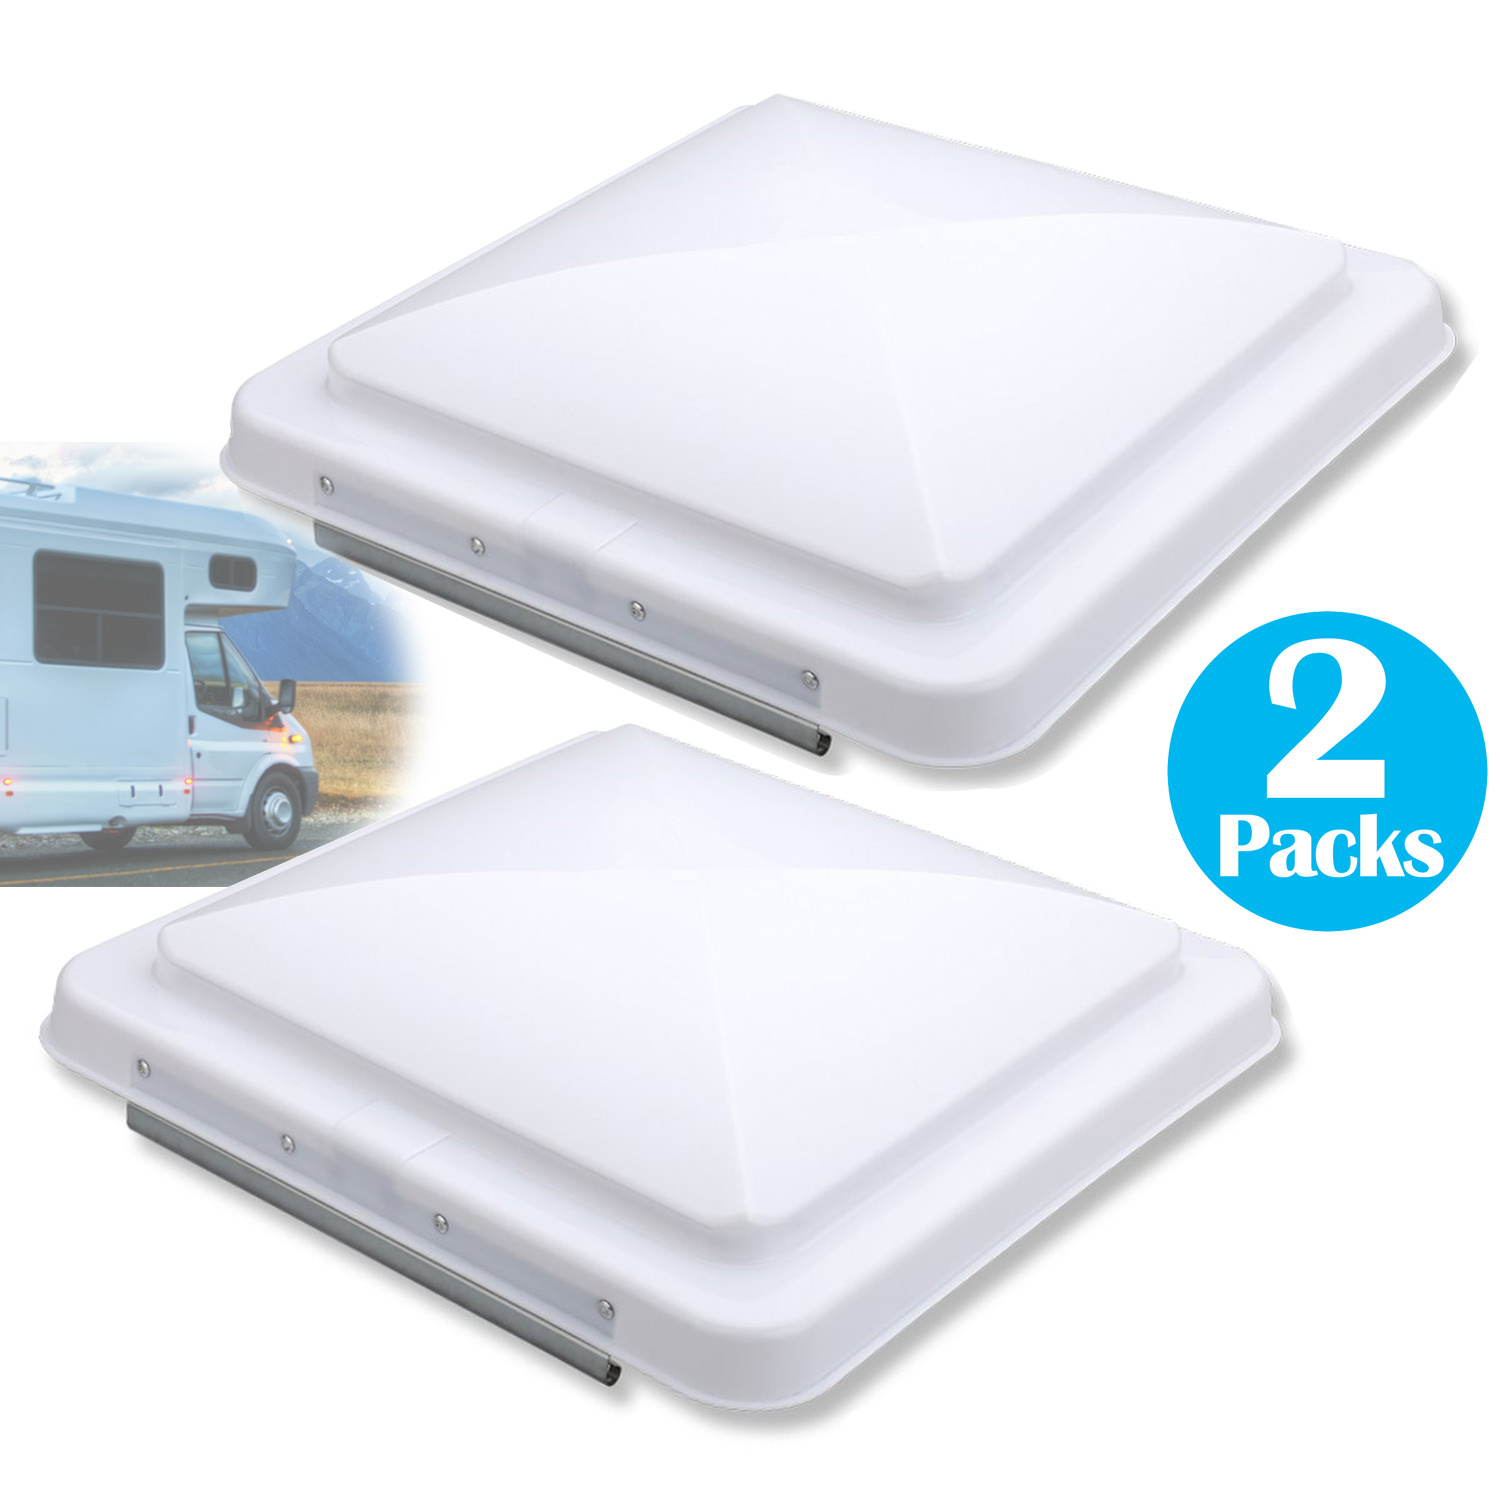 """2 Packs car RV Vents Replacement RV Roof Vent Cover 14""""x 14"""" White Vent Lid for Camper Trailer Motorhome"""